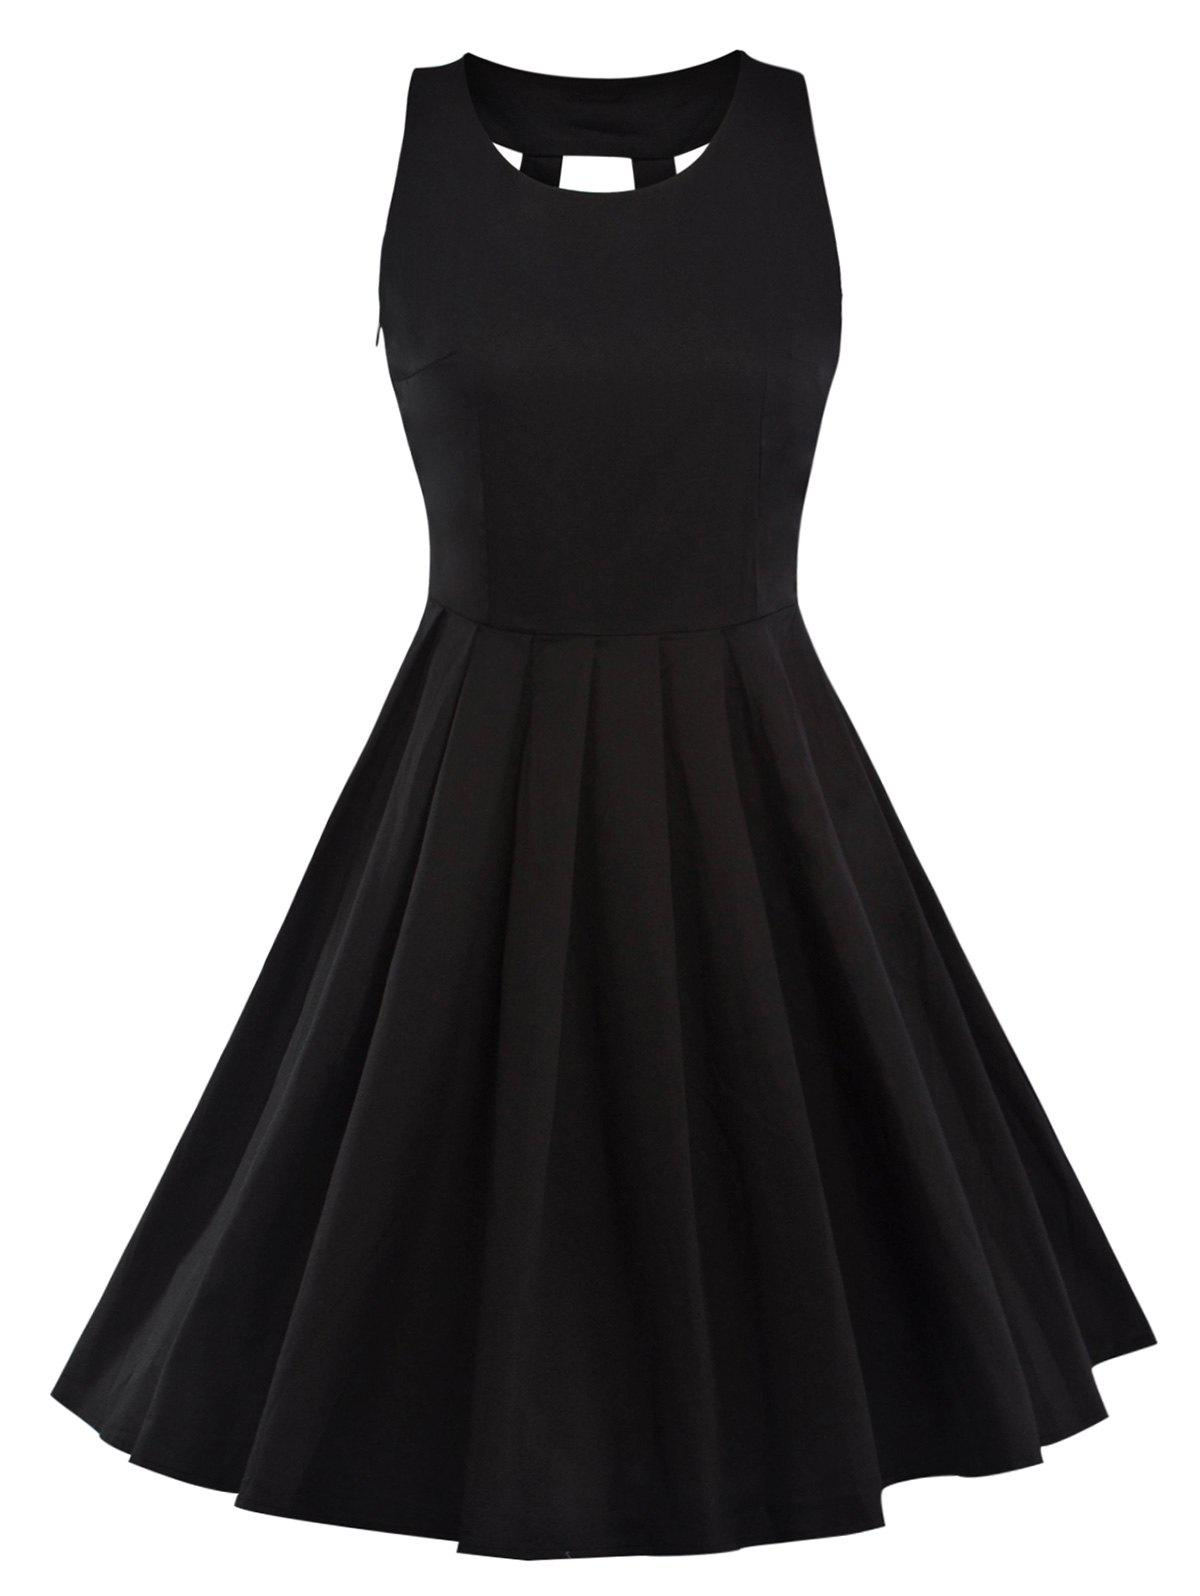 Vintage Pleated Fit and Flare Dress - BLACK 2XL